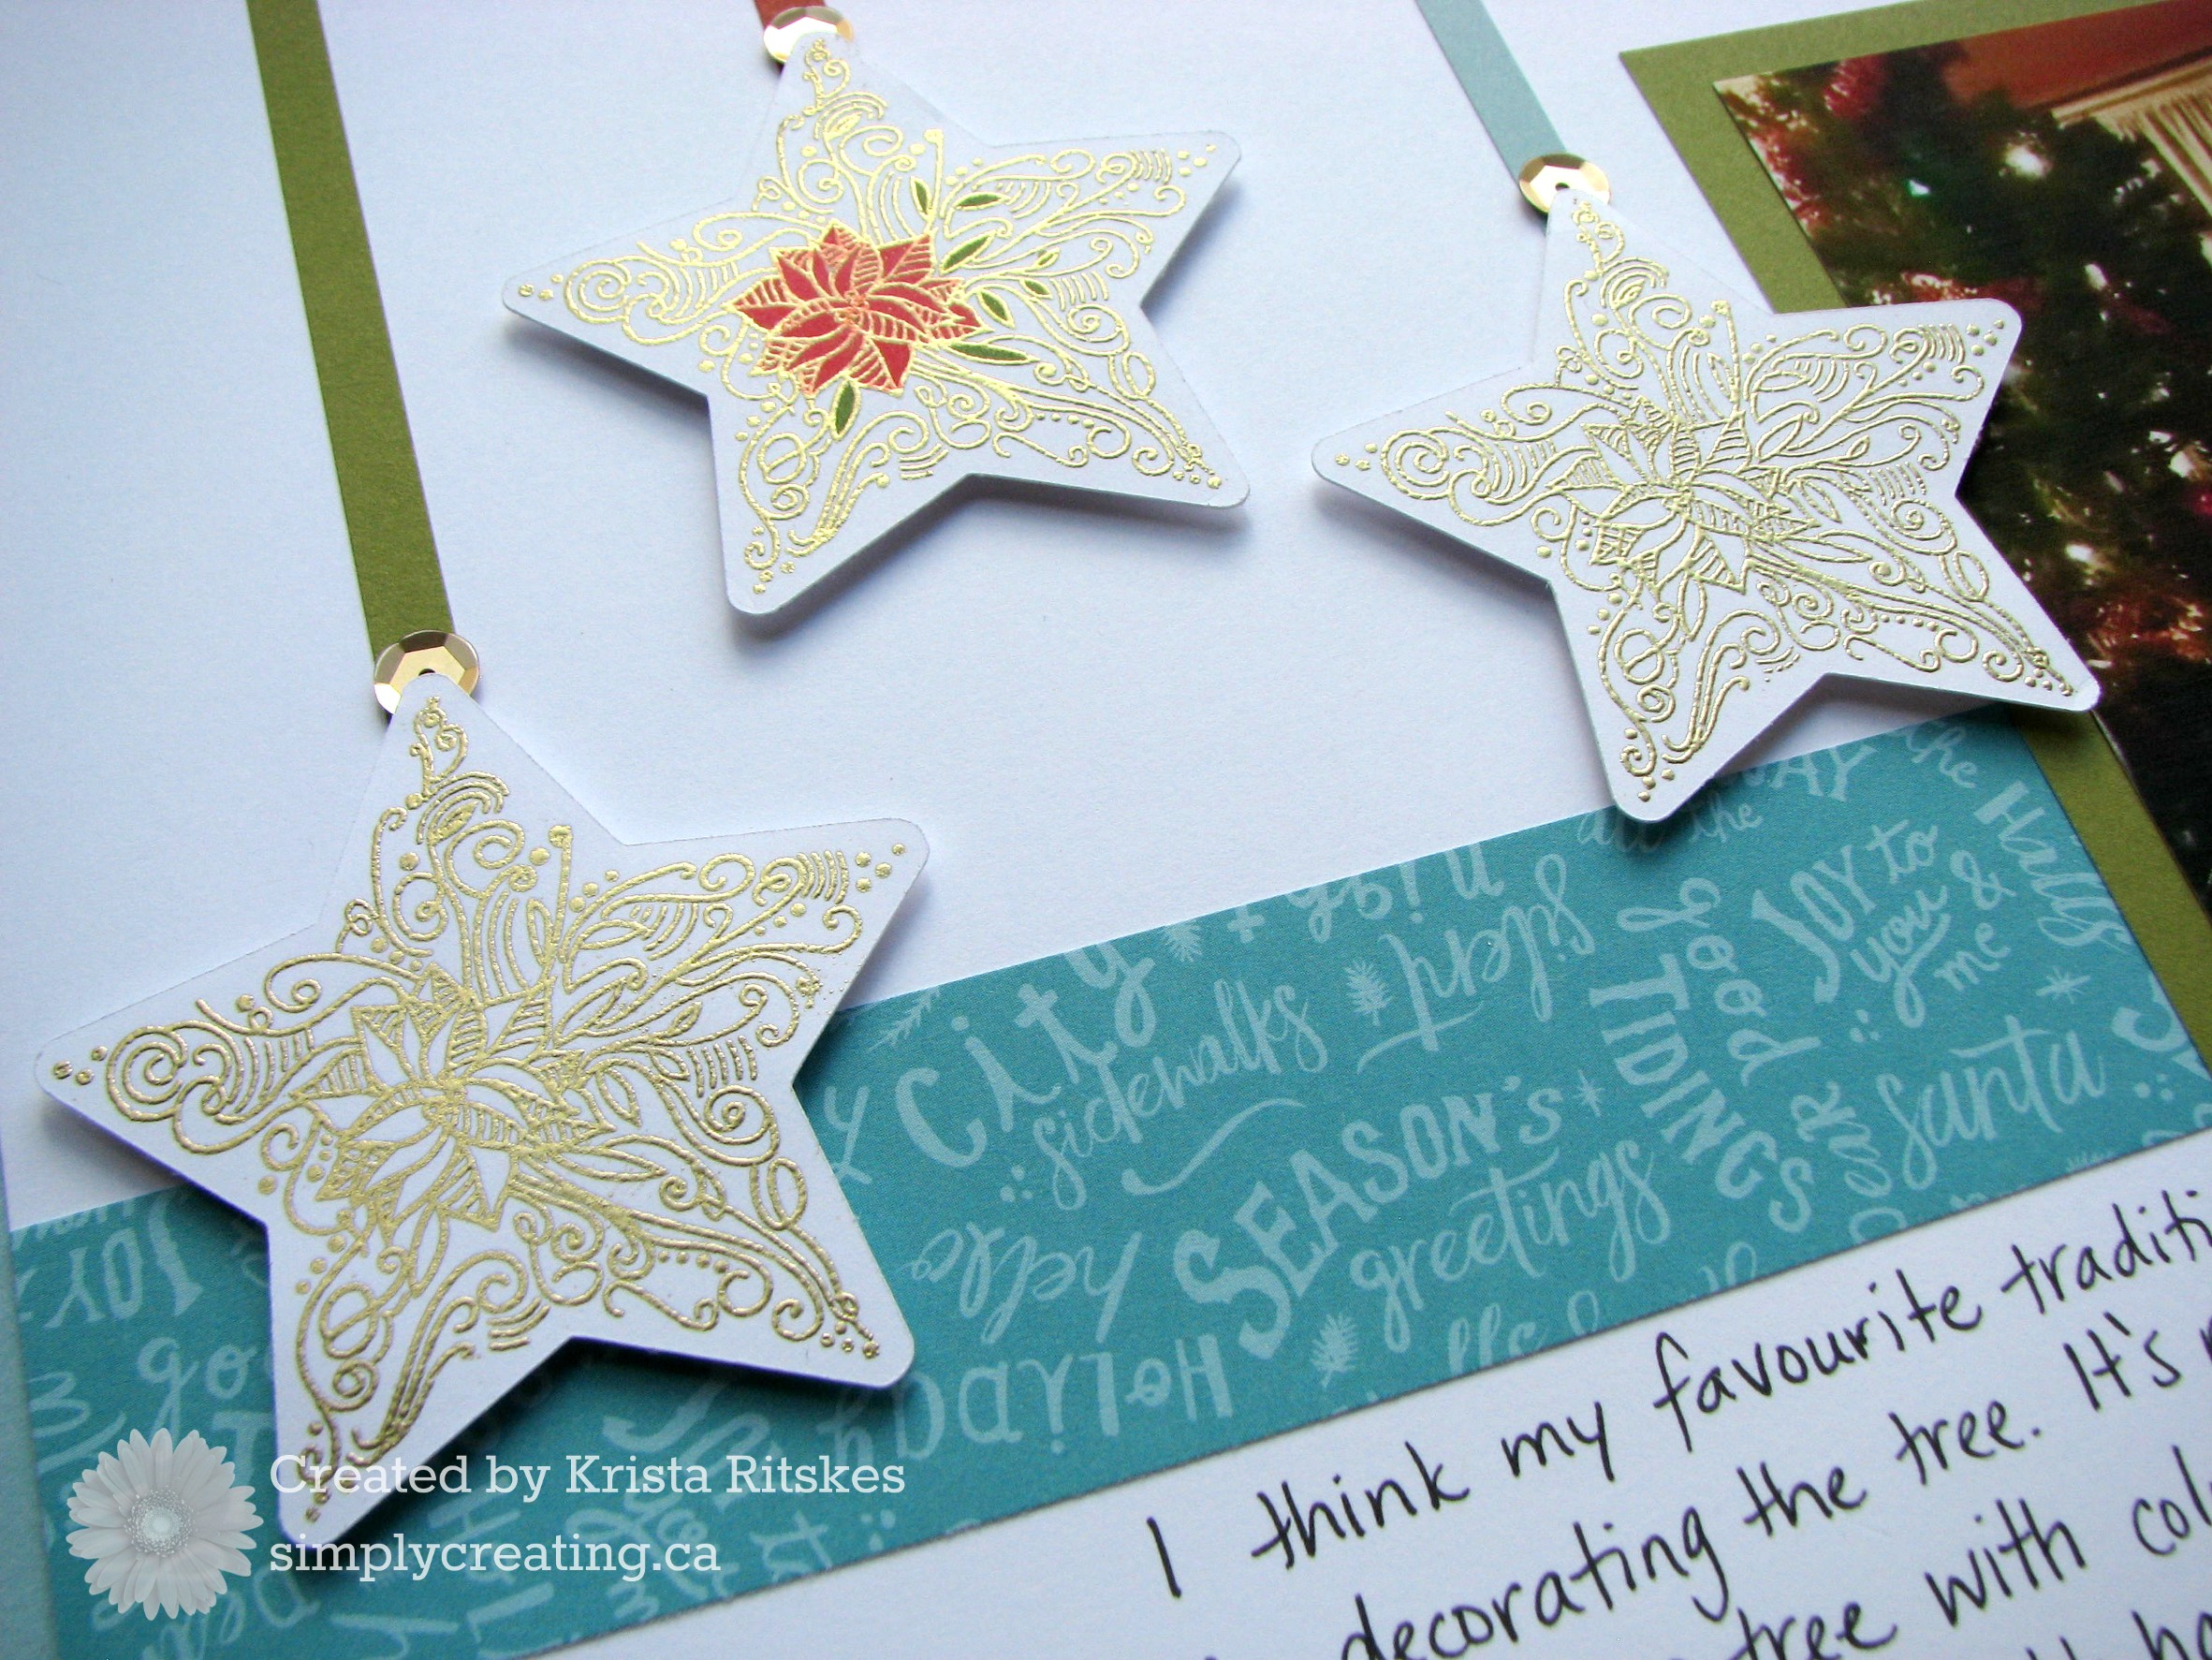 October Stamp-of-the-Month Projects